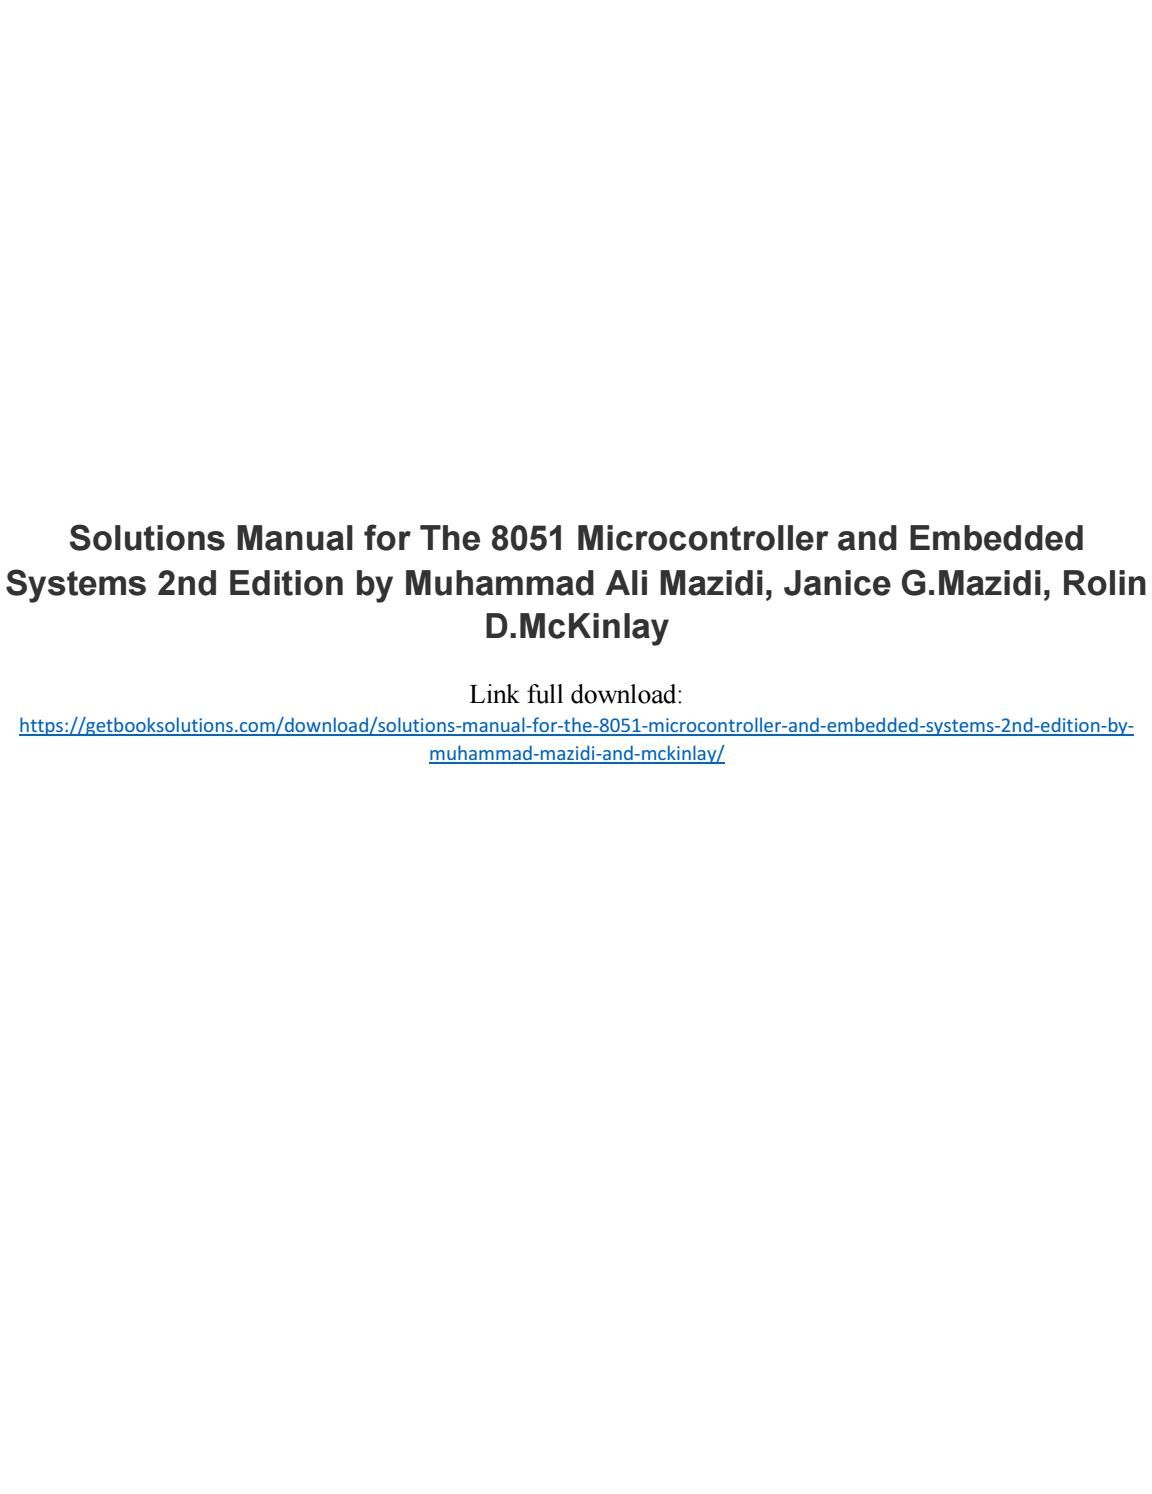 Solutions manual for the 8051 microcontroller and embedded systems 2nd  edition by muhammad mazidi an